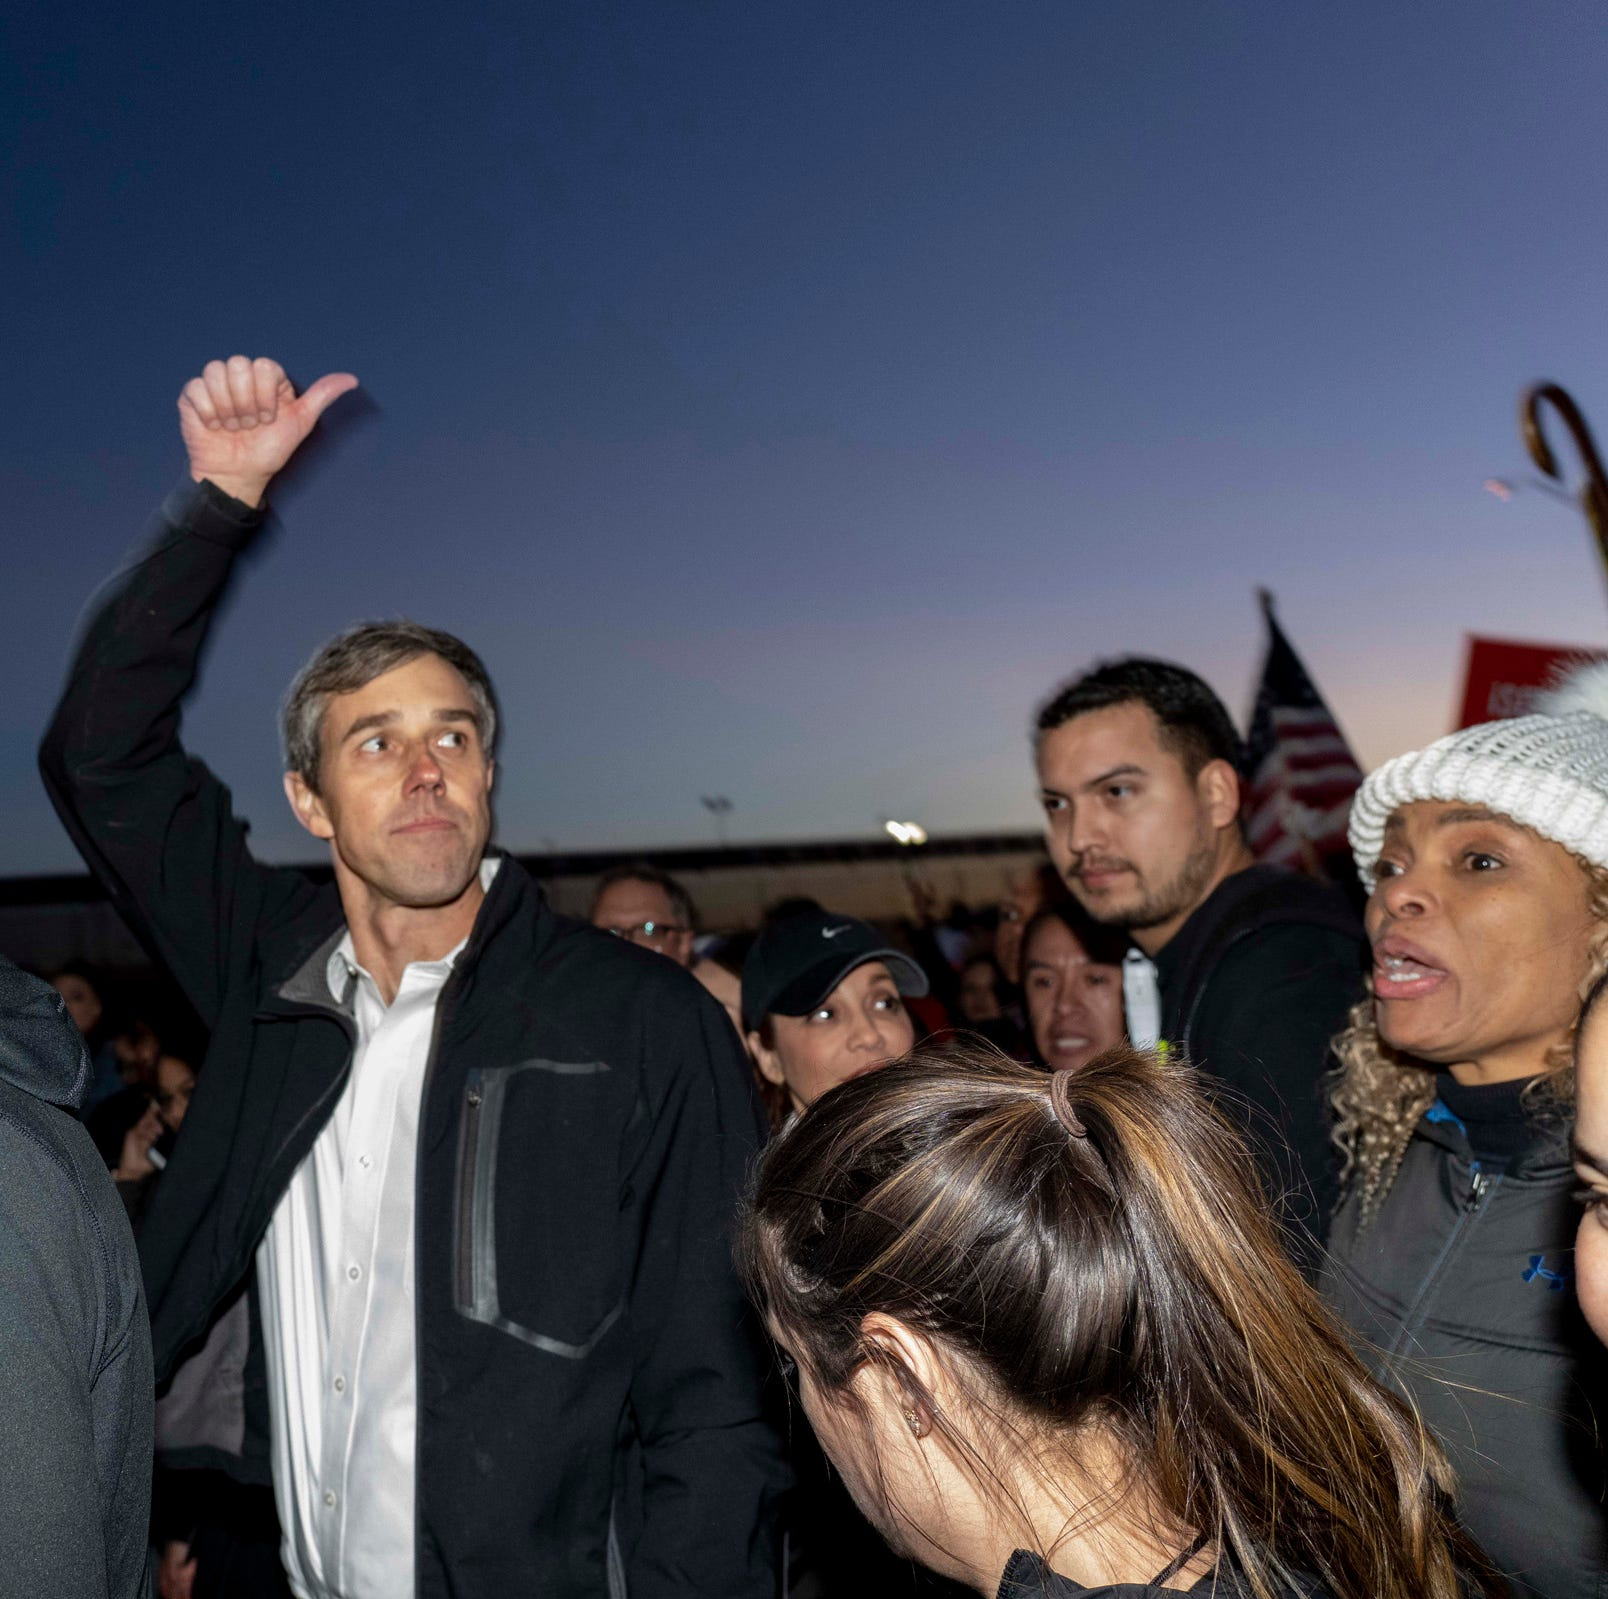 GOP attacks on Beto O'Rourke: How President Trump and other Republicans criticize him